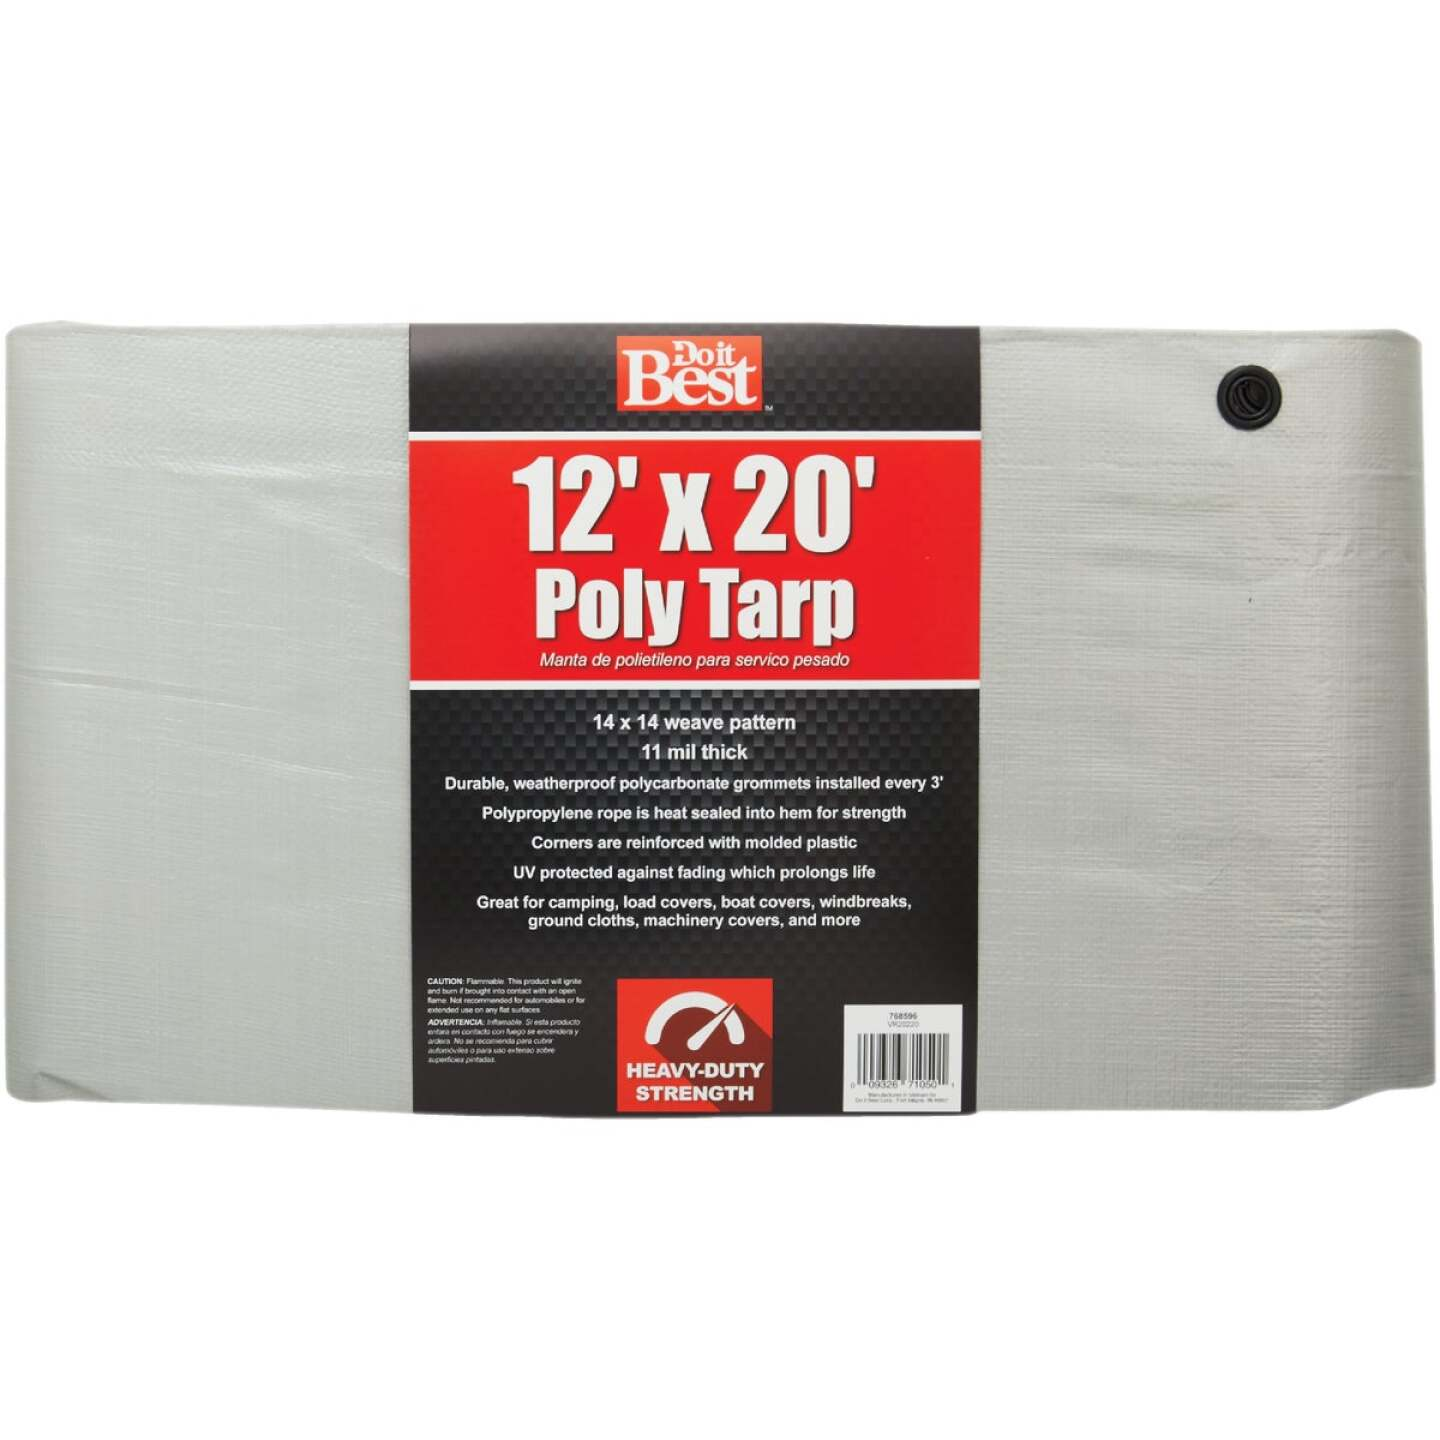 Do it Best Silver Woven 12 Ft. x 20 Ft. Heavy Duty Poly Tarp Image 1